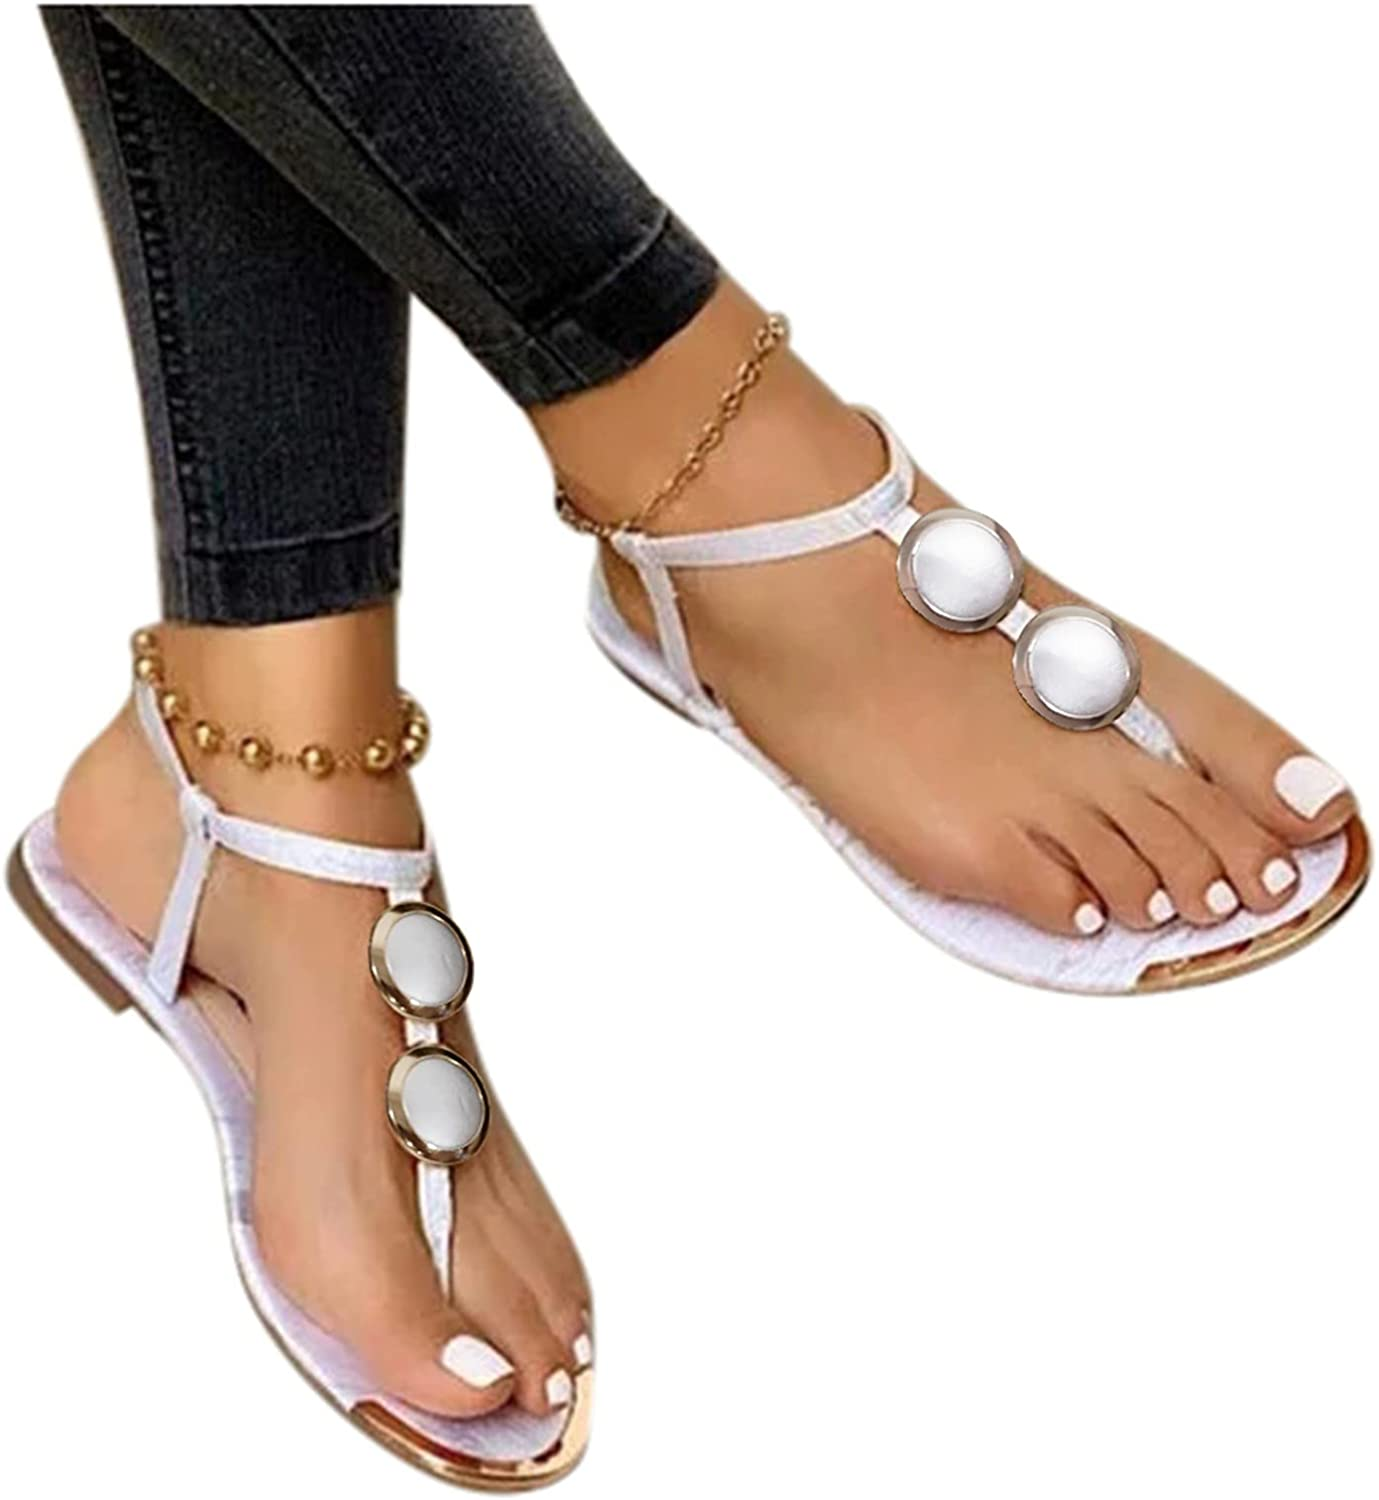 UOCUFY Sandals Some Dealing full price reduction reservation for Women Dressy Casual Women's Summer 2021 Comfy